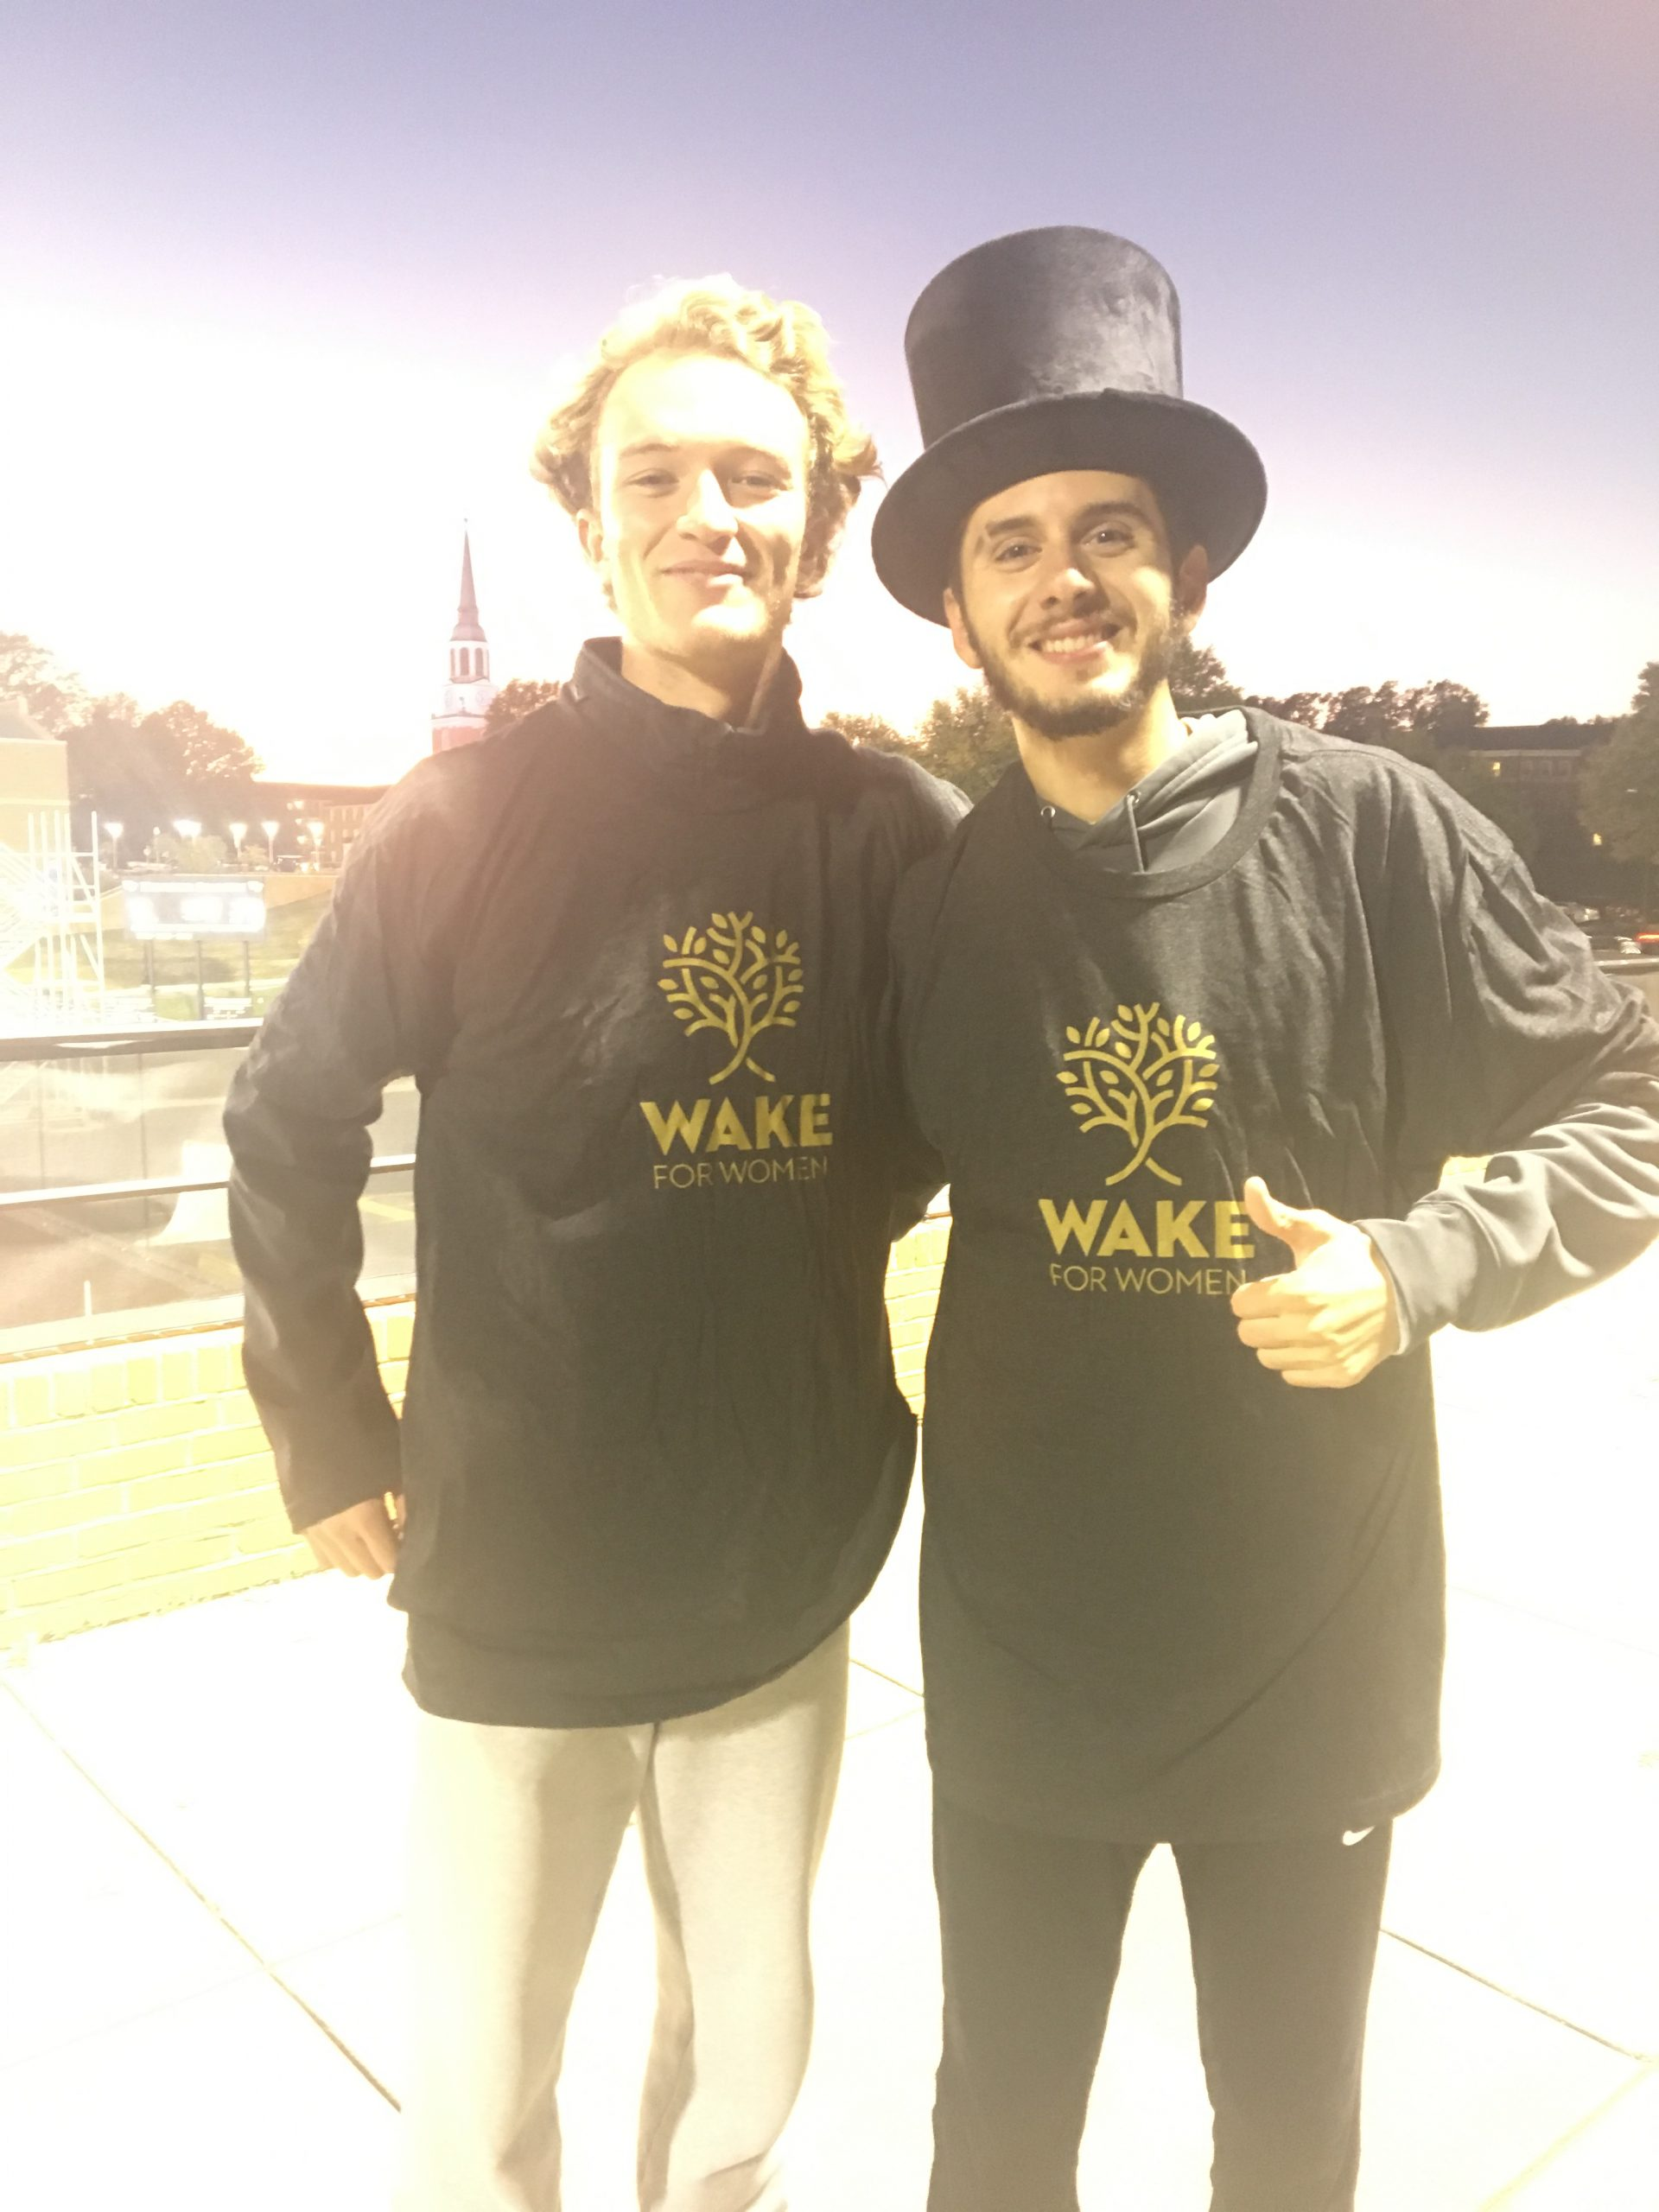 Two young male students in Wake for Women shirts.